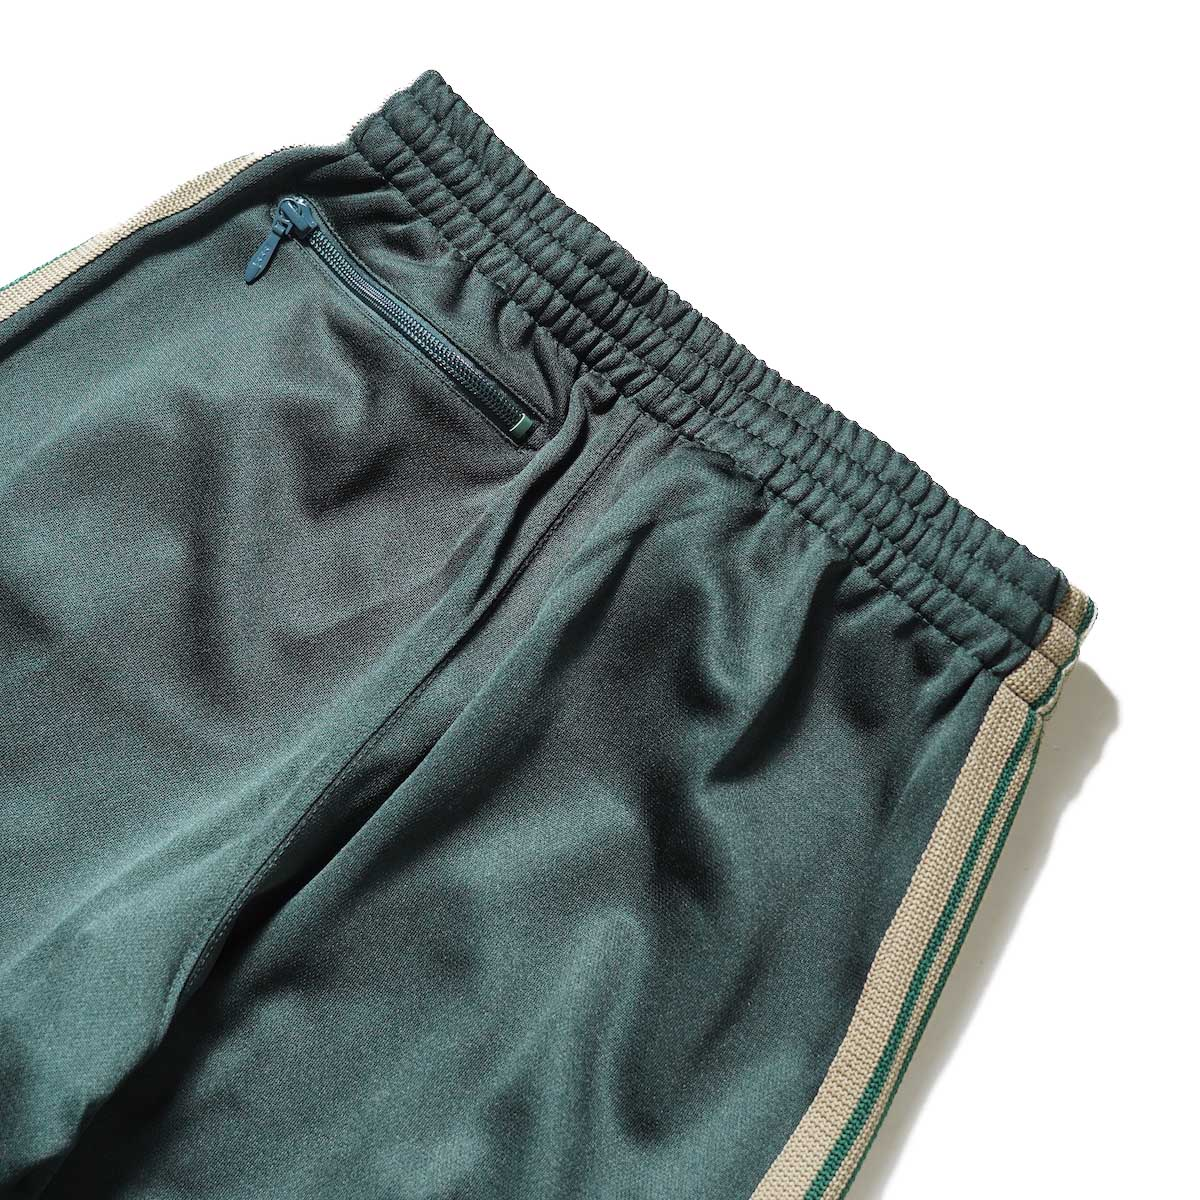 Needles / Boot-Cut Track Pant -Poly Smooth (Dk.Green)ヒップポケット